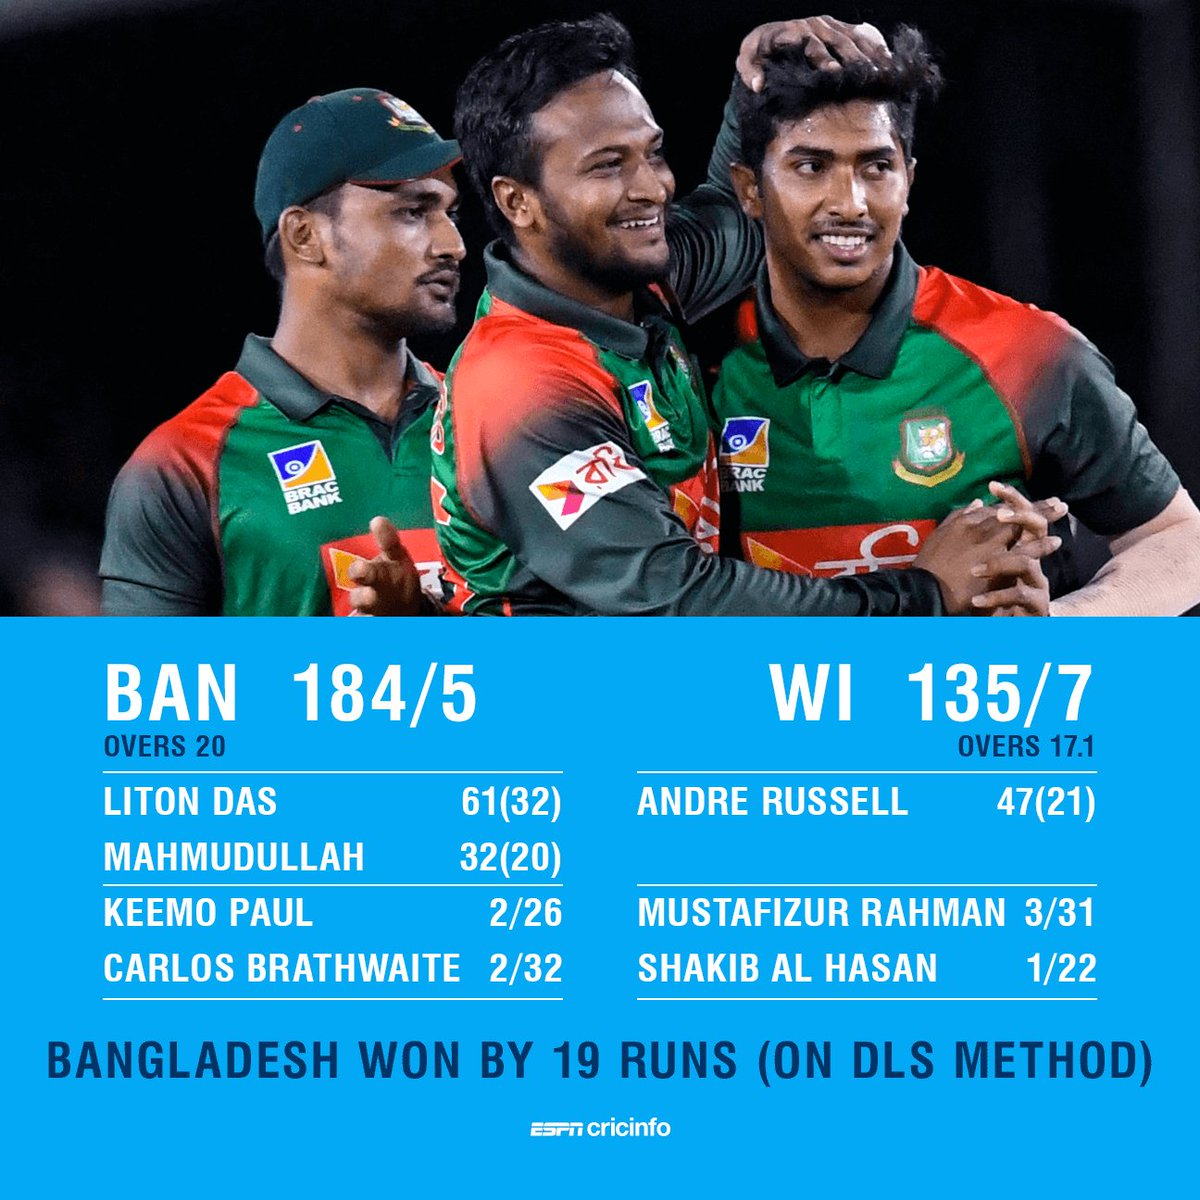 Bangladesh make it back-to-back wins in Florida to seal the T20I series!   https://t.co/67sxKaeuVO #WIvBAN https://t.co/XnmpnC3yIr